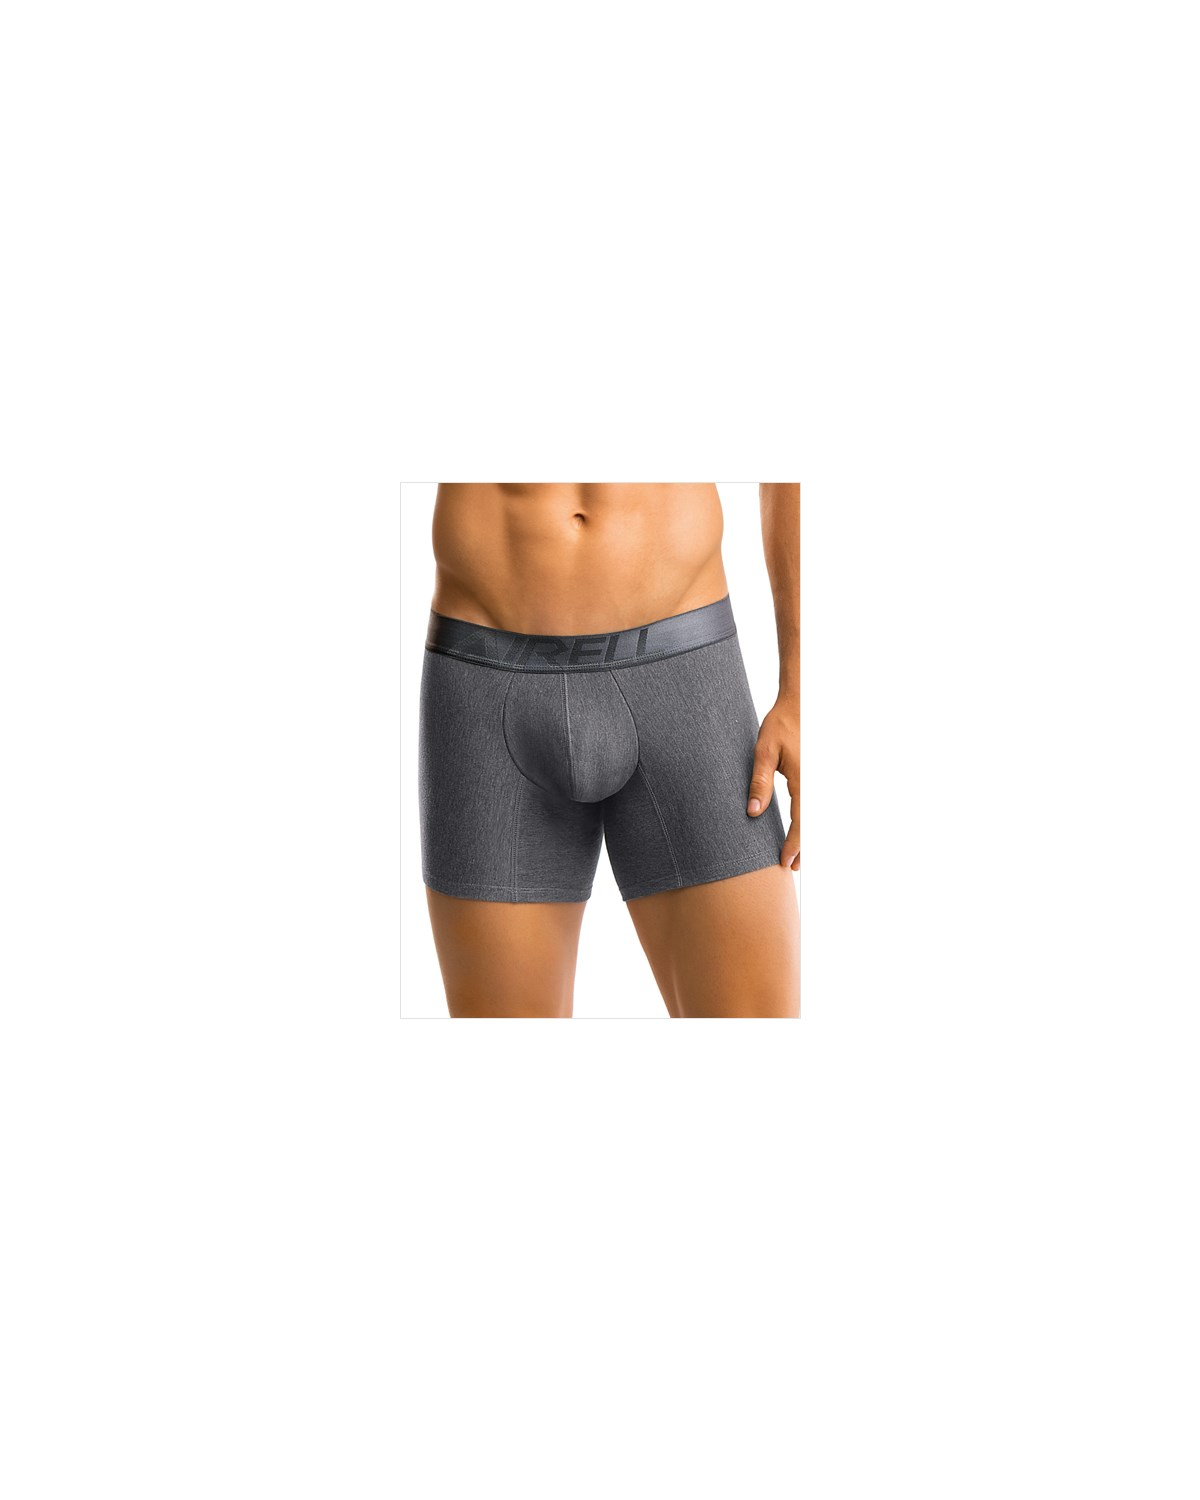 leo advanced cotton boxer brief-769- Dark Grey-MainImage